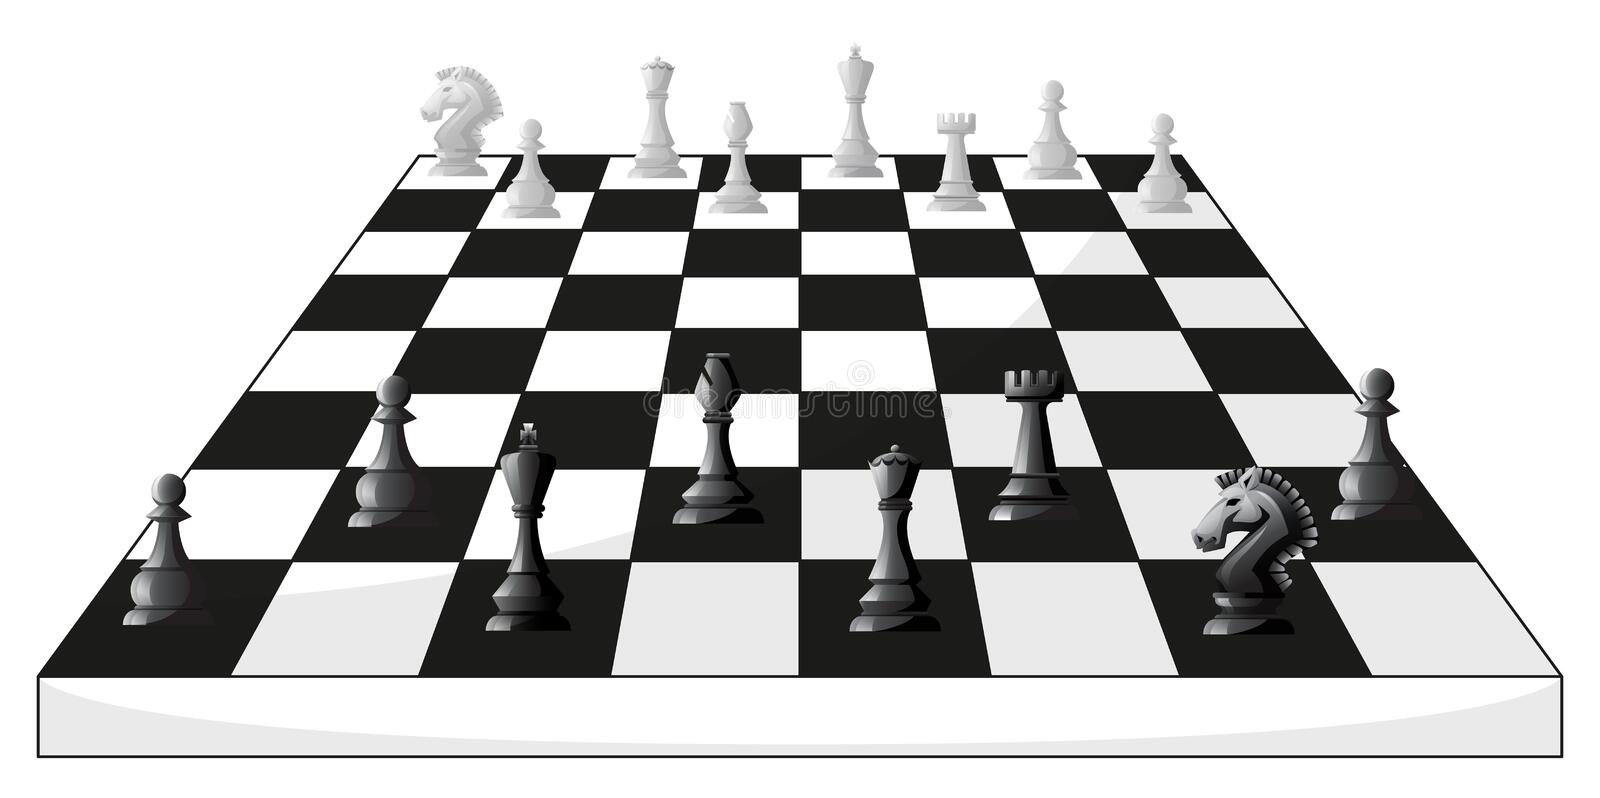 Boardgame of chess in black and white stock illustration